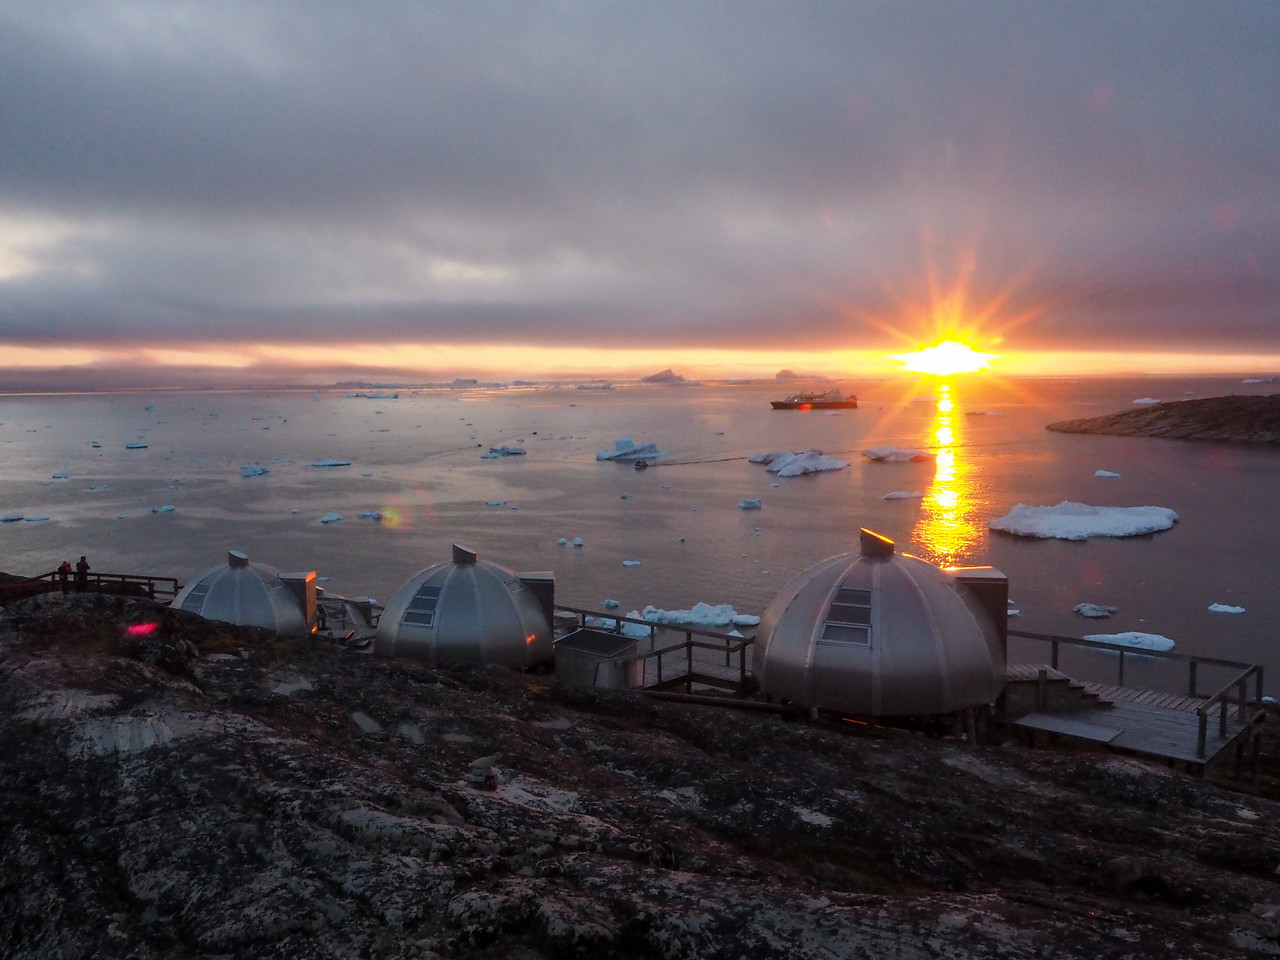 Sunset at Hotel Arctic in Ilulissat